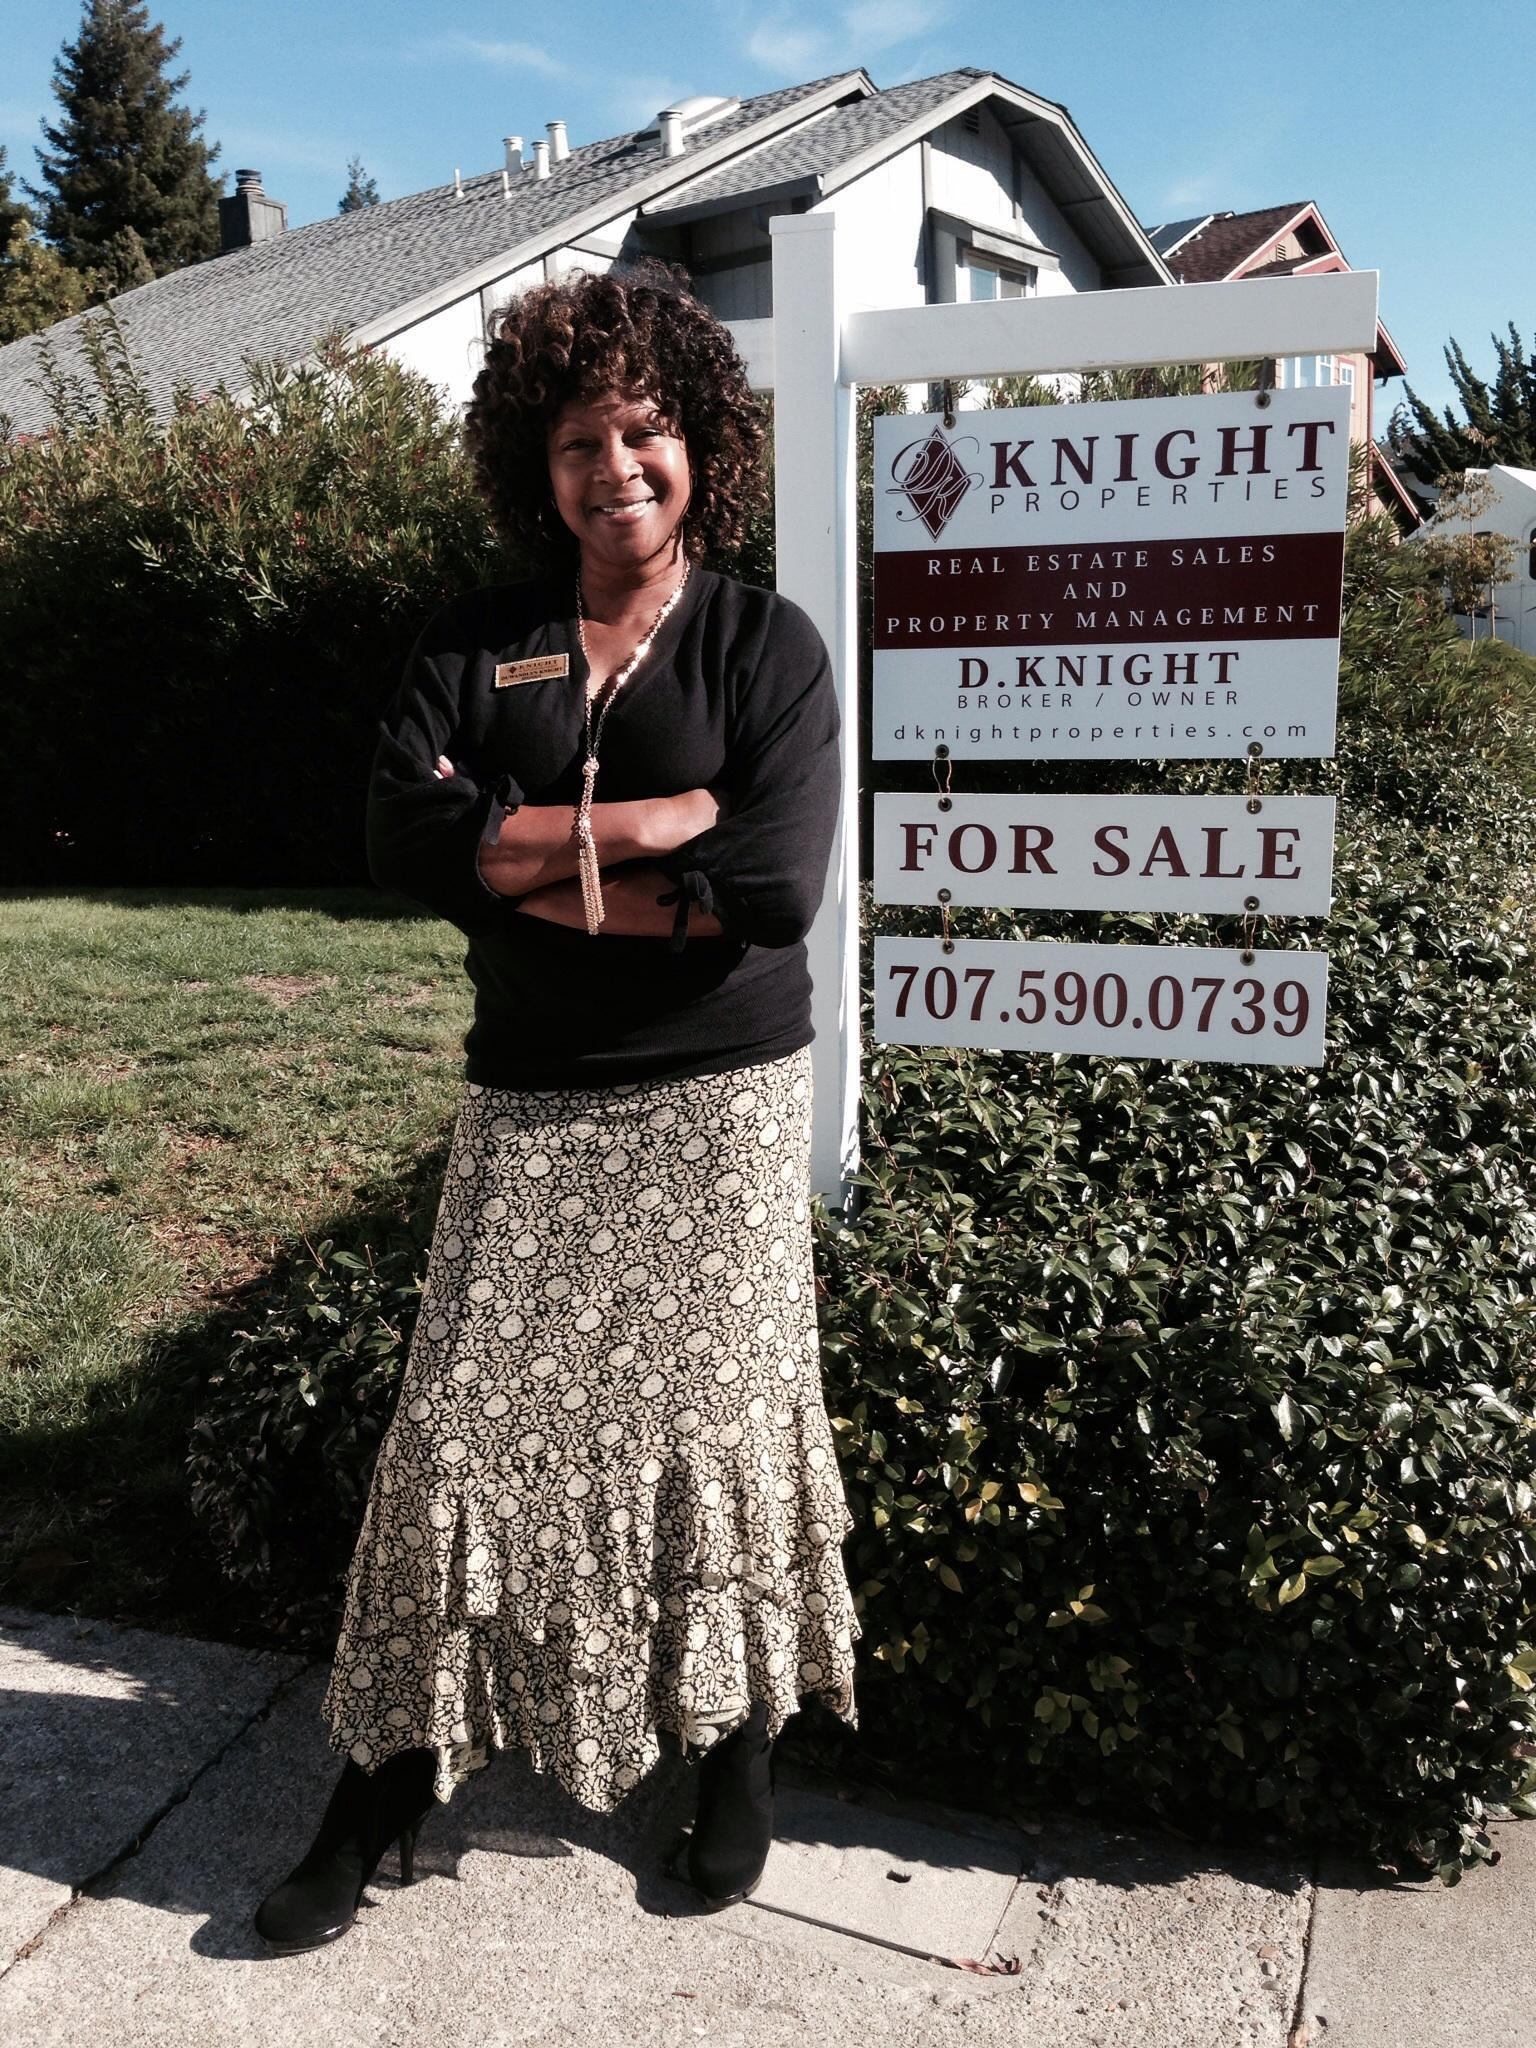 Knight Properties Real Estate Sales And Property Management